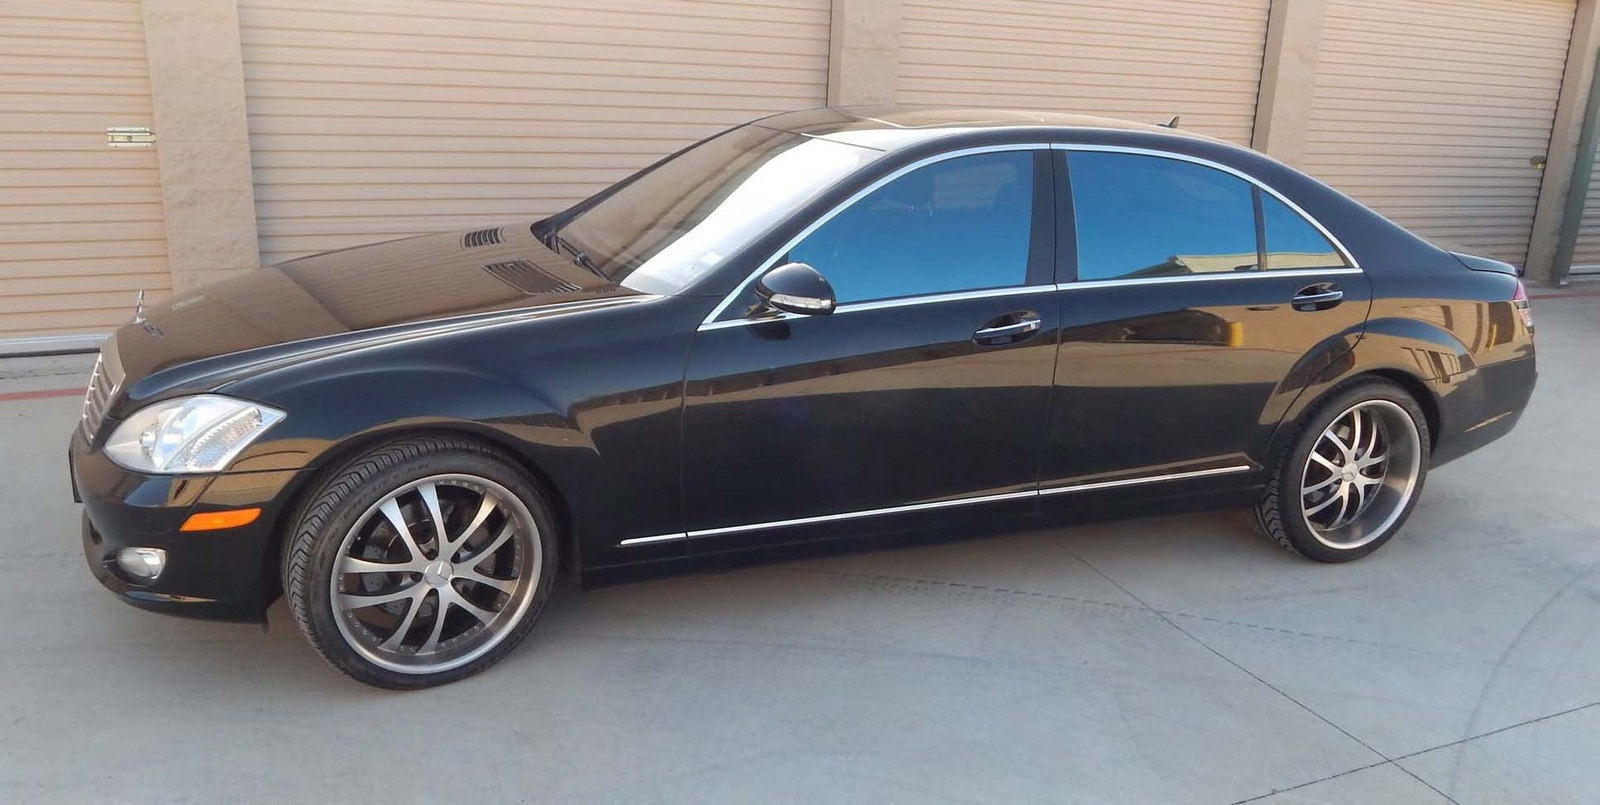 2008 mercedes benz s class s550 for sale cargurus for Mercedes benz 2008 s550 for sale